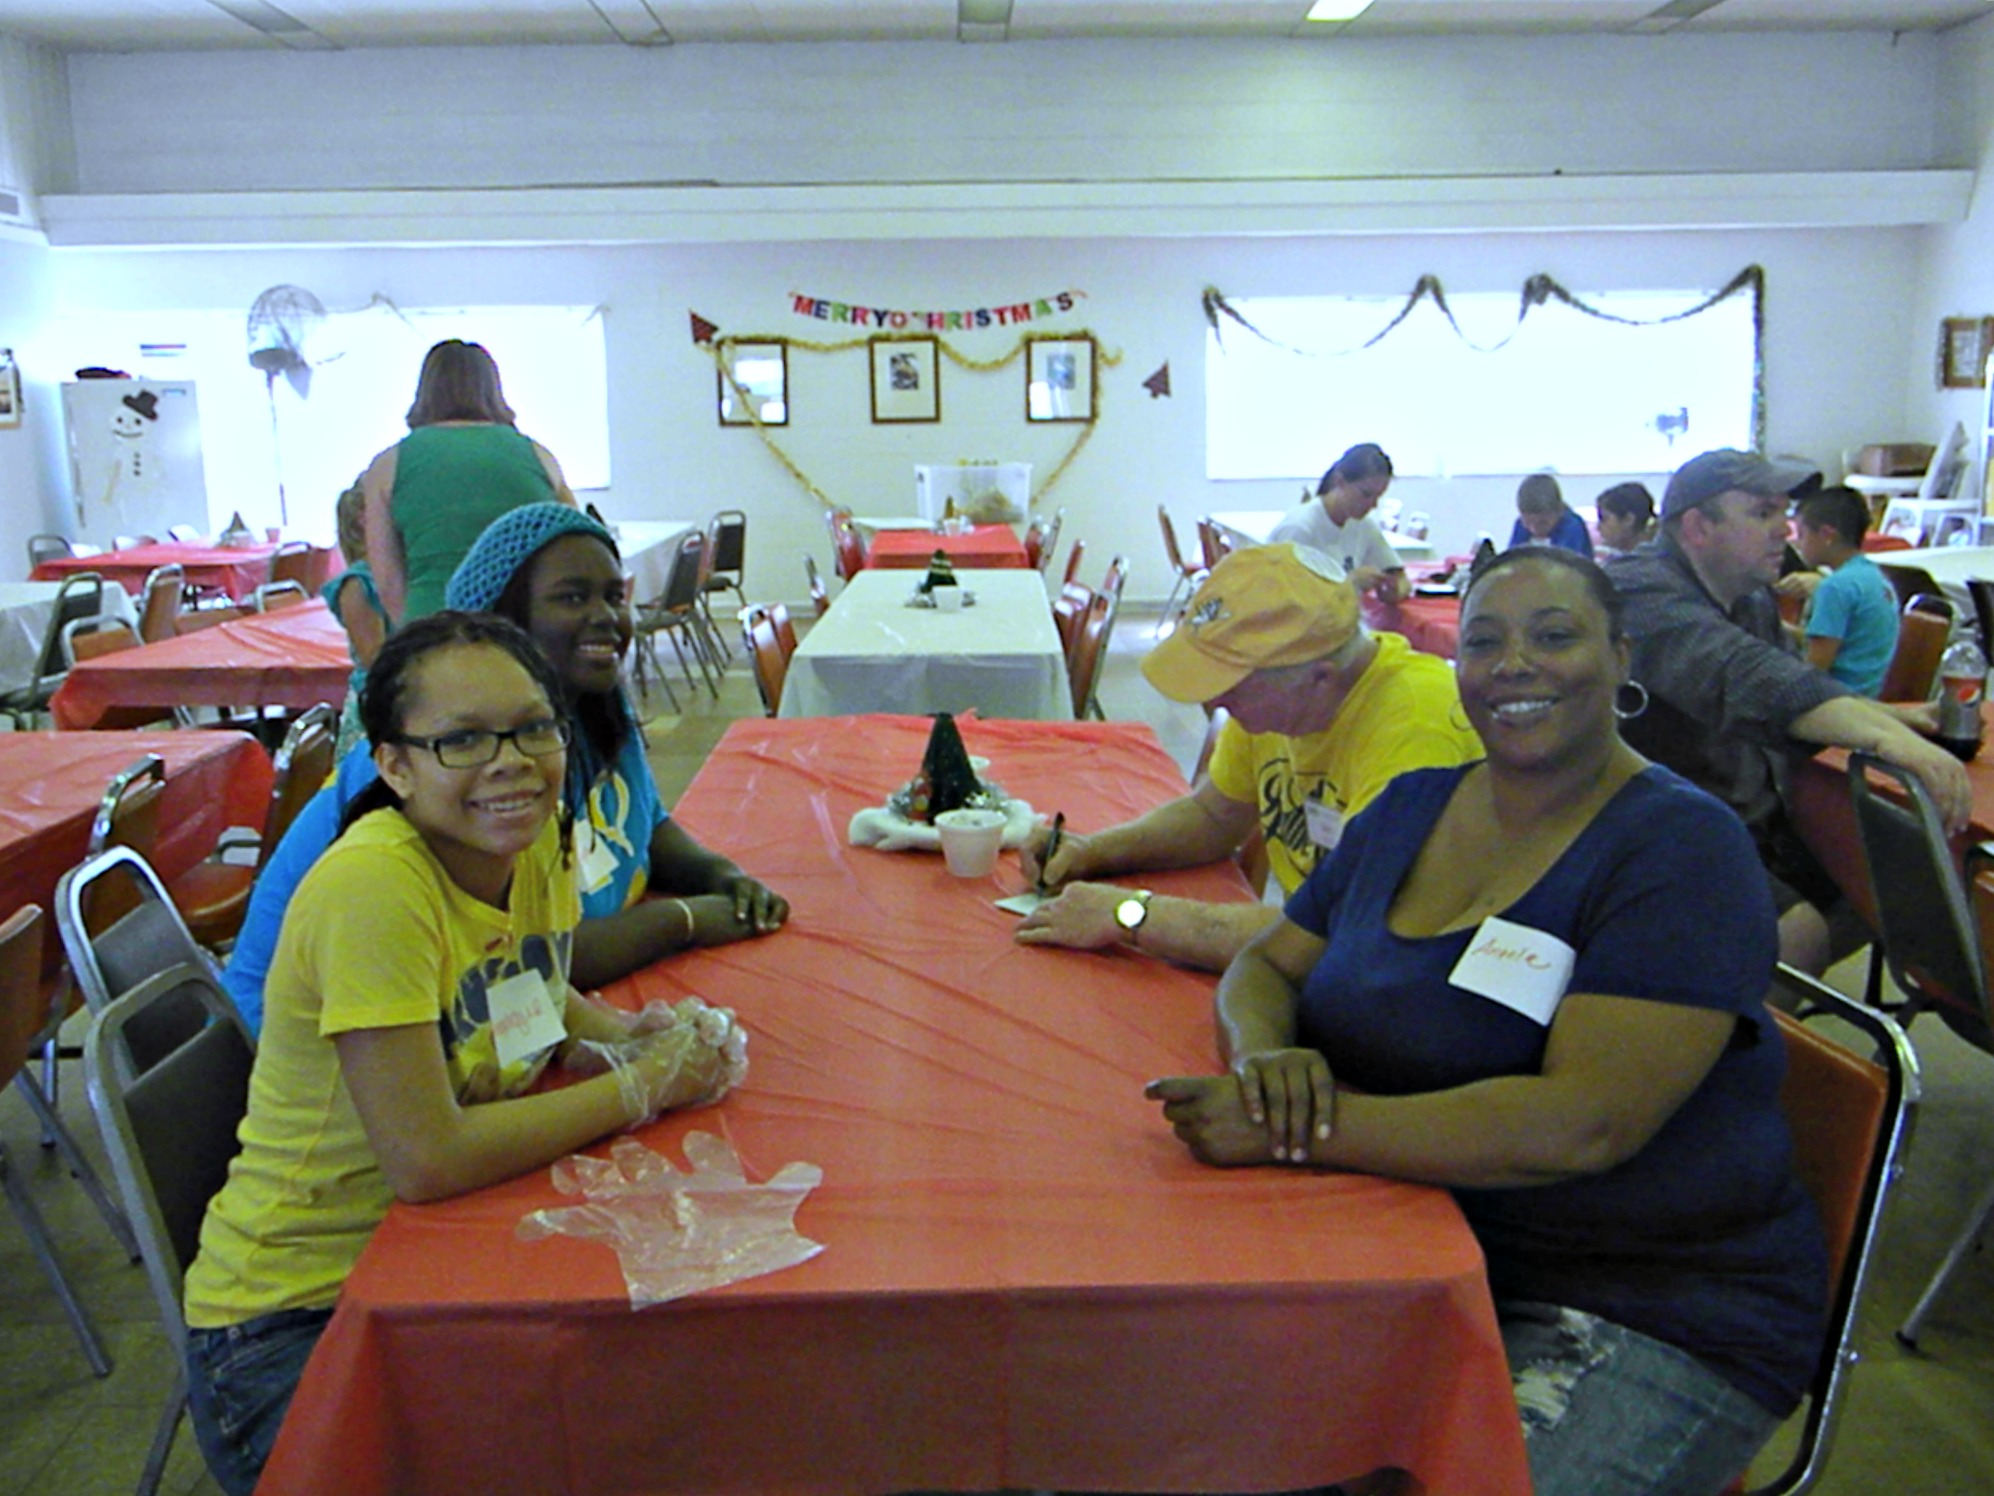 Volunteers decorate and plan before the meal